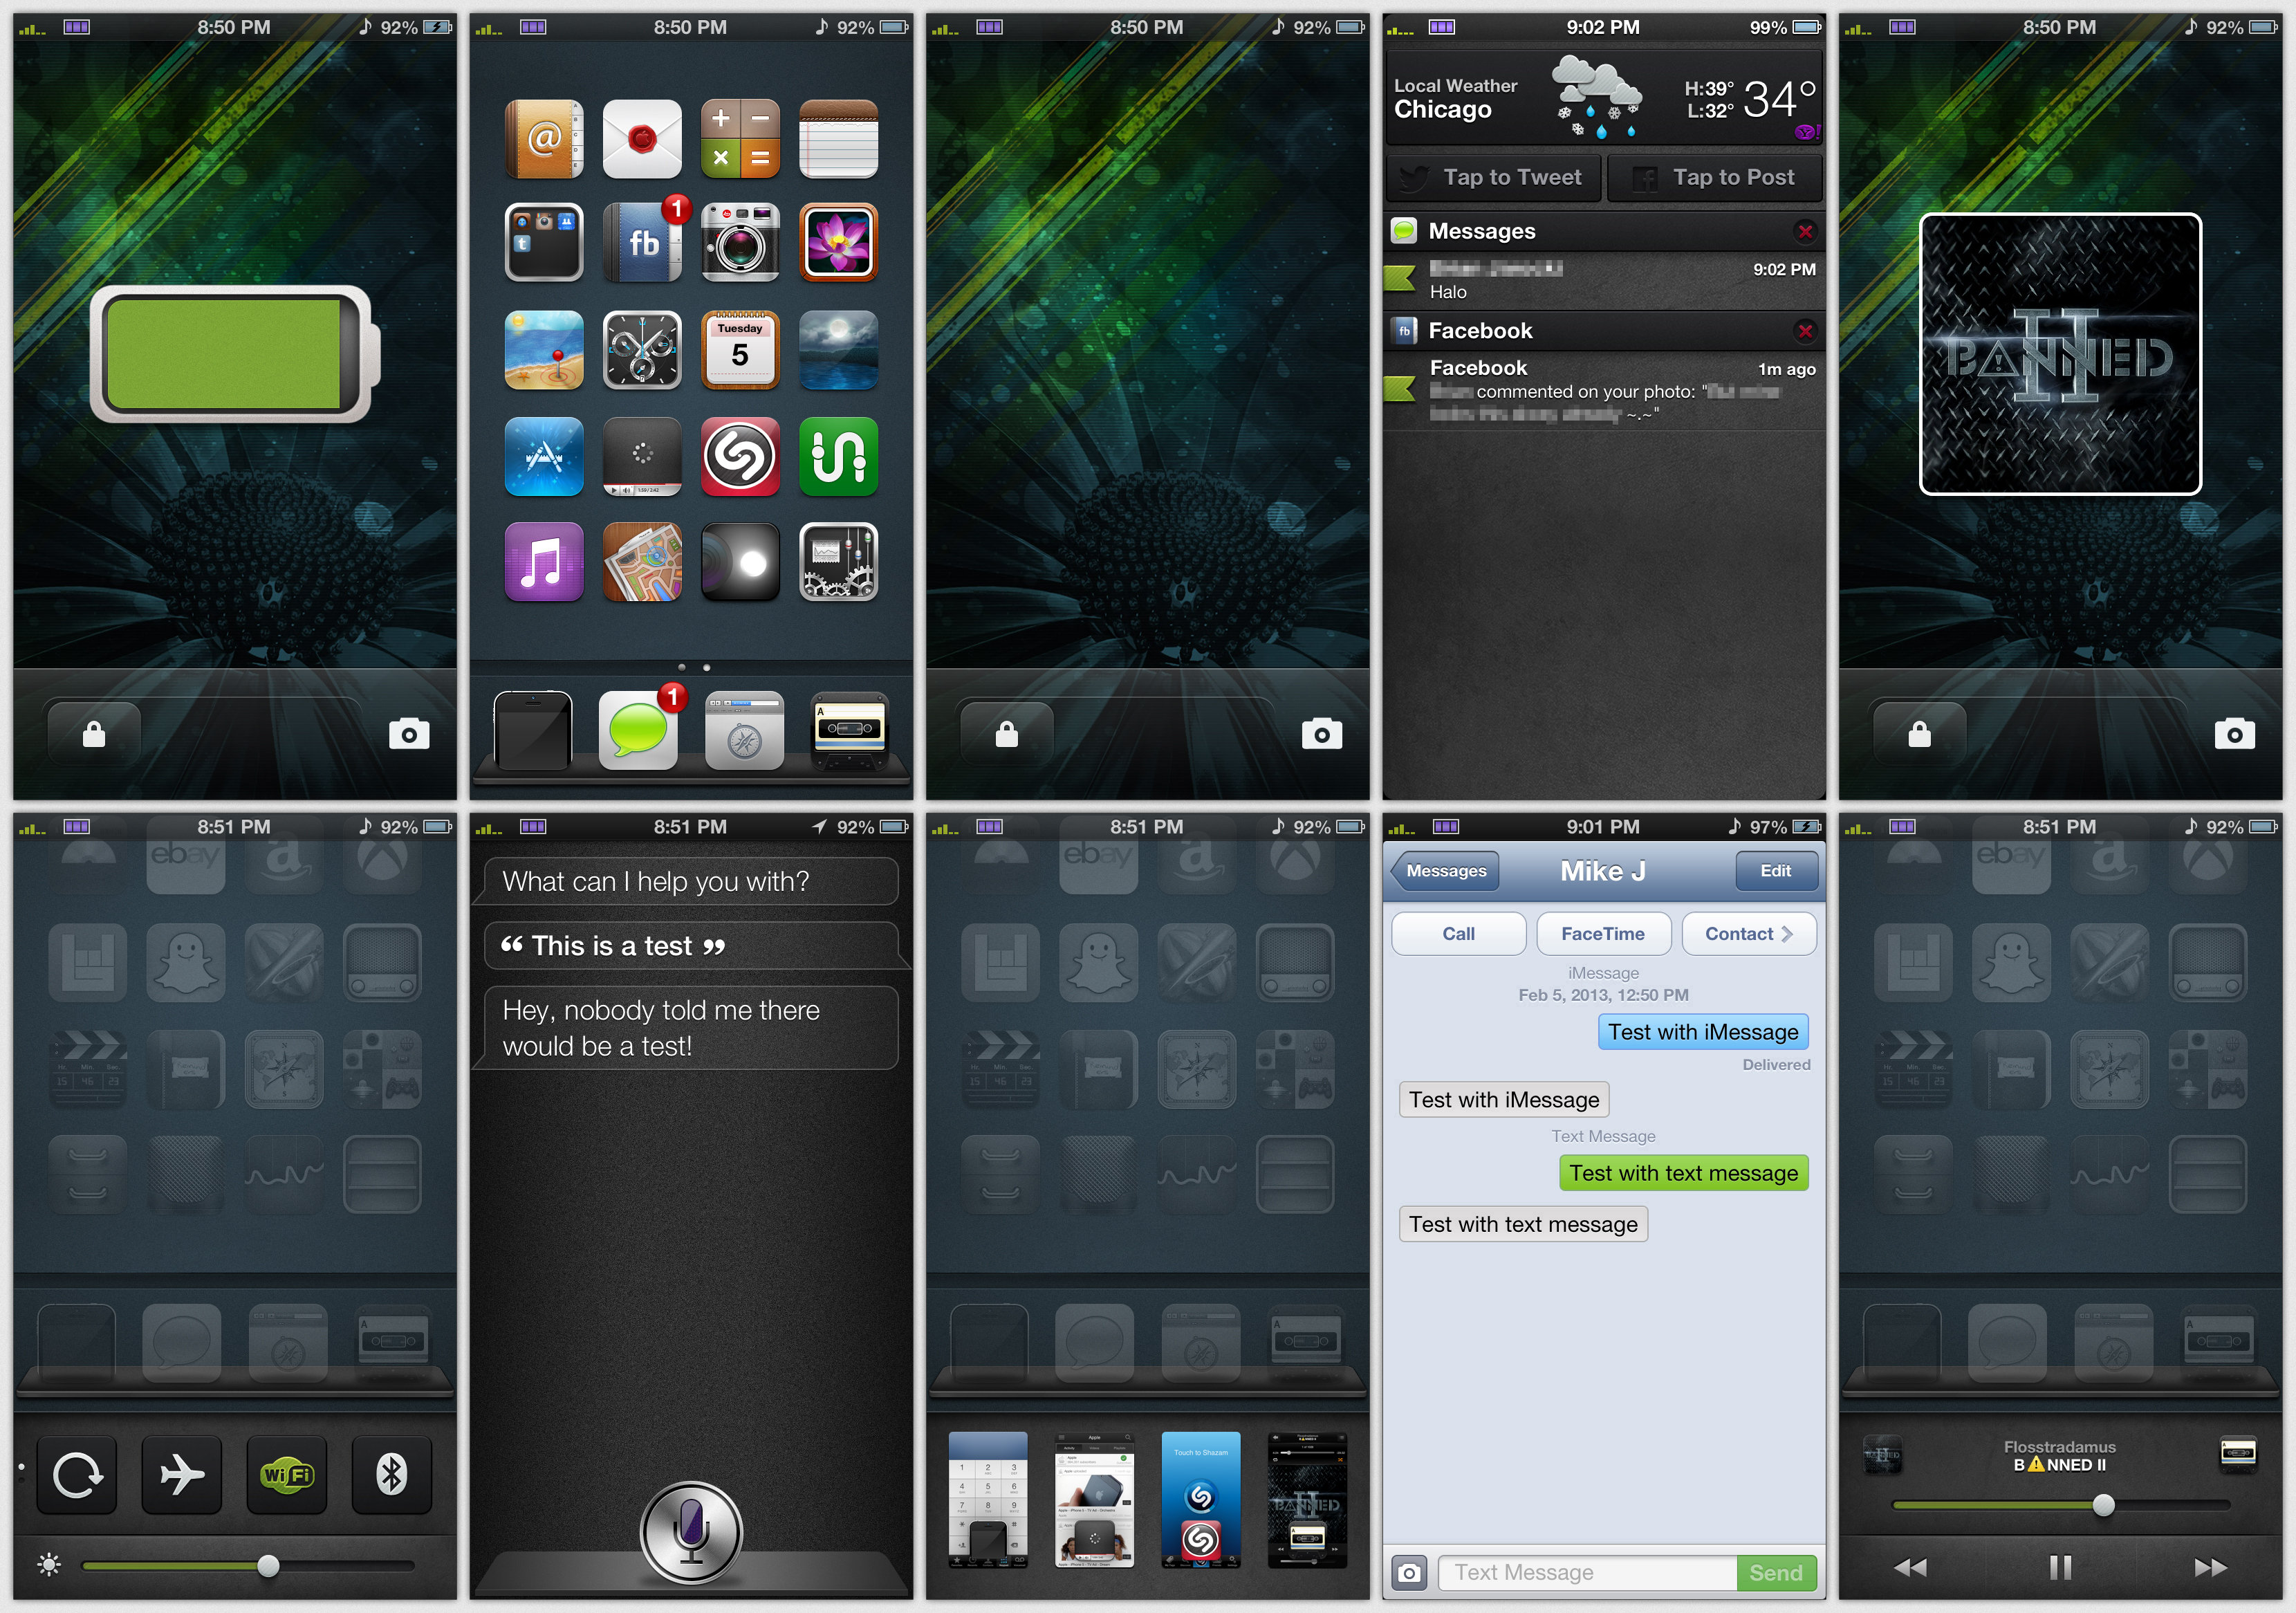 how to screenshot on iphone 5 my iphone 5 ios 6 screenshot by mik3j on deviantart 19071